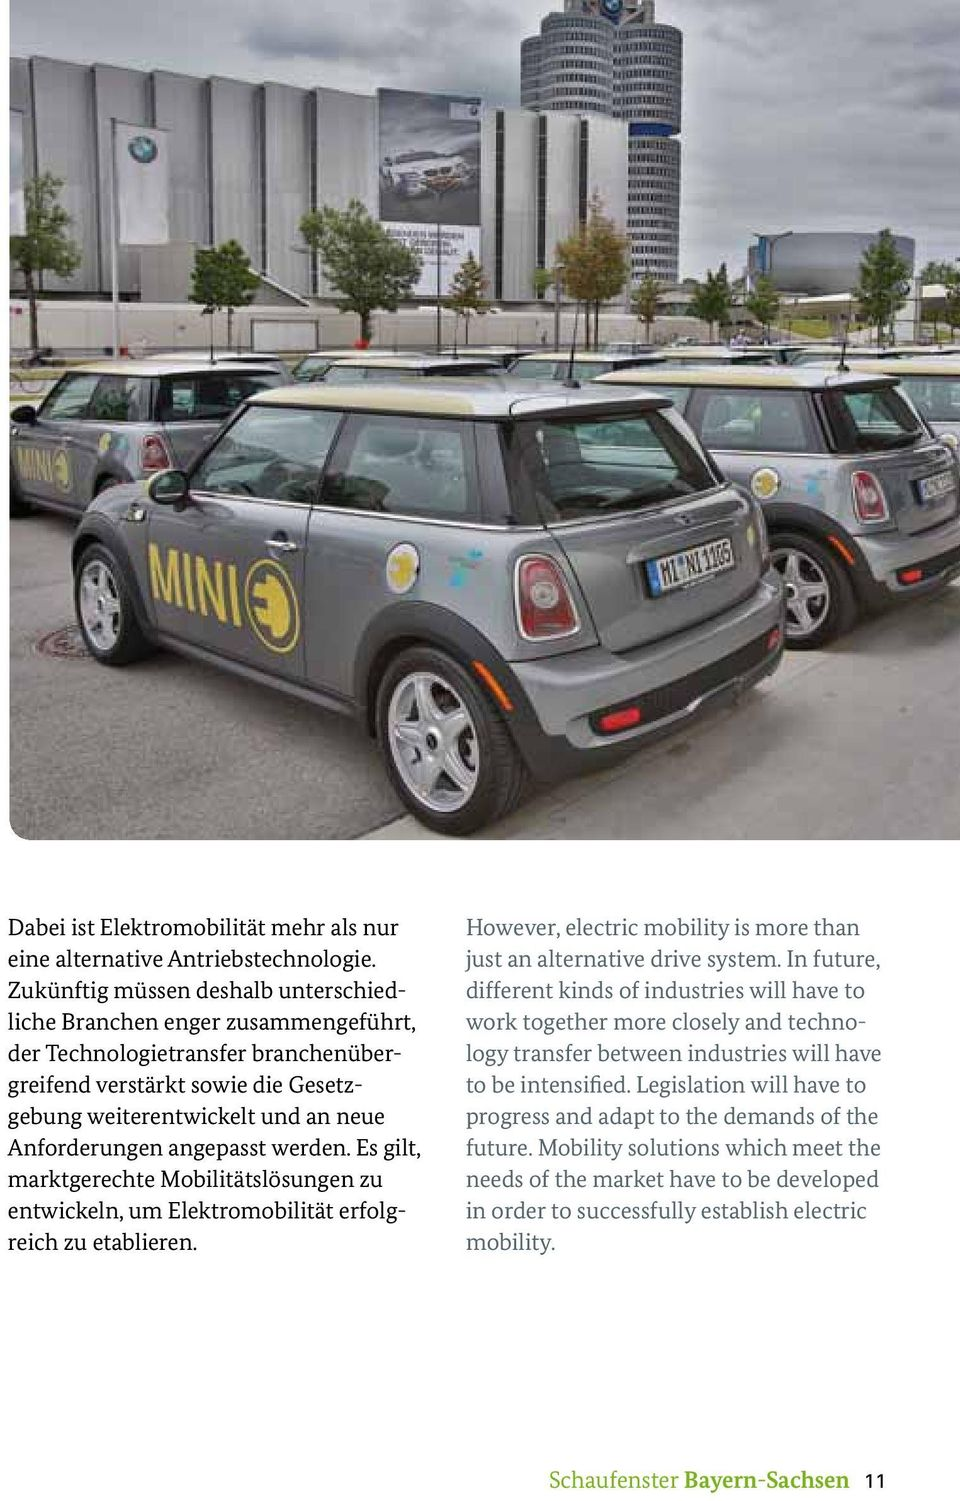 angepasst werden. Es gilt, marktgerechte Mobilitätslösungen zu entwickeln, um Elektromobilität erfolgreich zu etablieren. However, electric mobility is more than just an alternative drive system.